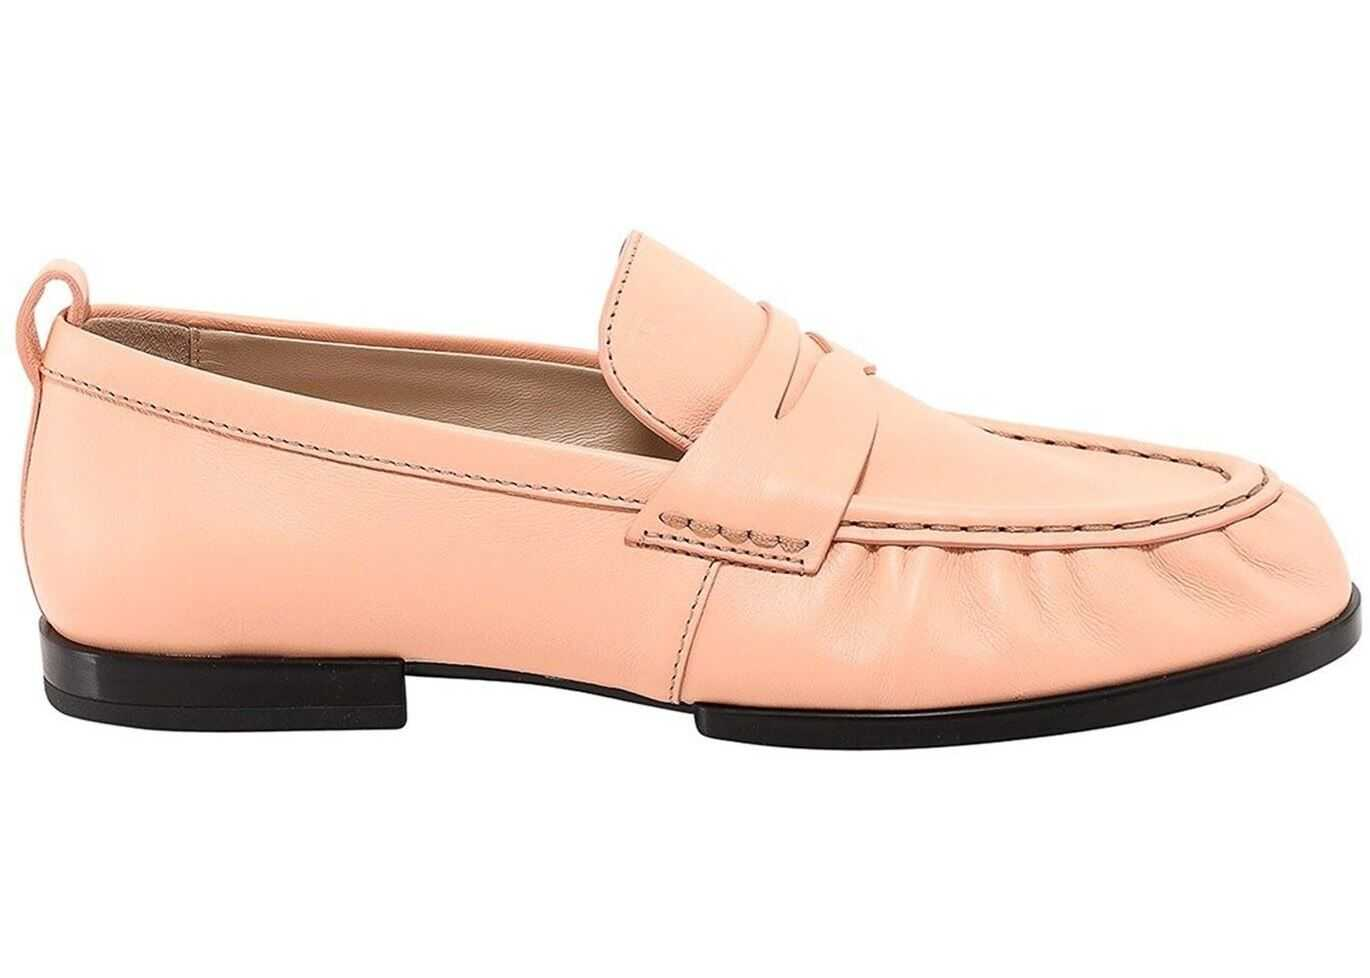 TOD'S Suede Loafers In Pink XXW02E0EC60PHXM008 Pink imagine b-mall.ro